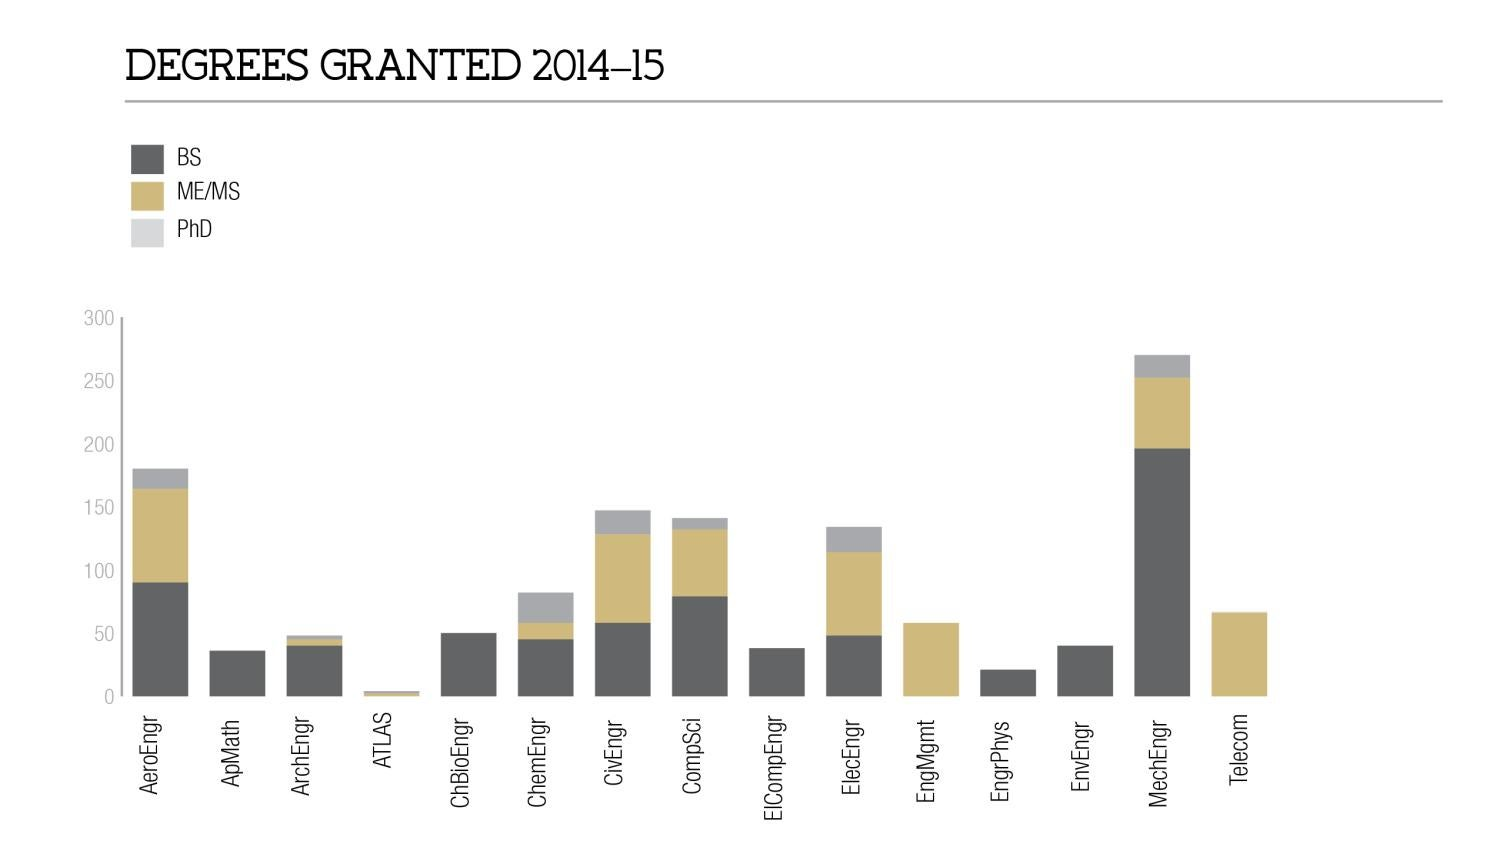 Degrees Granted 2014-15 by Major